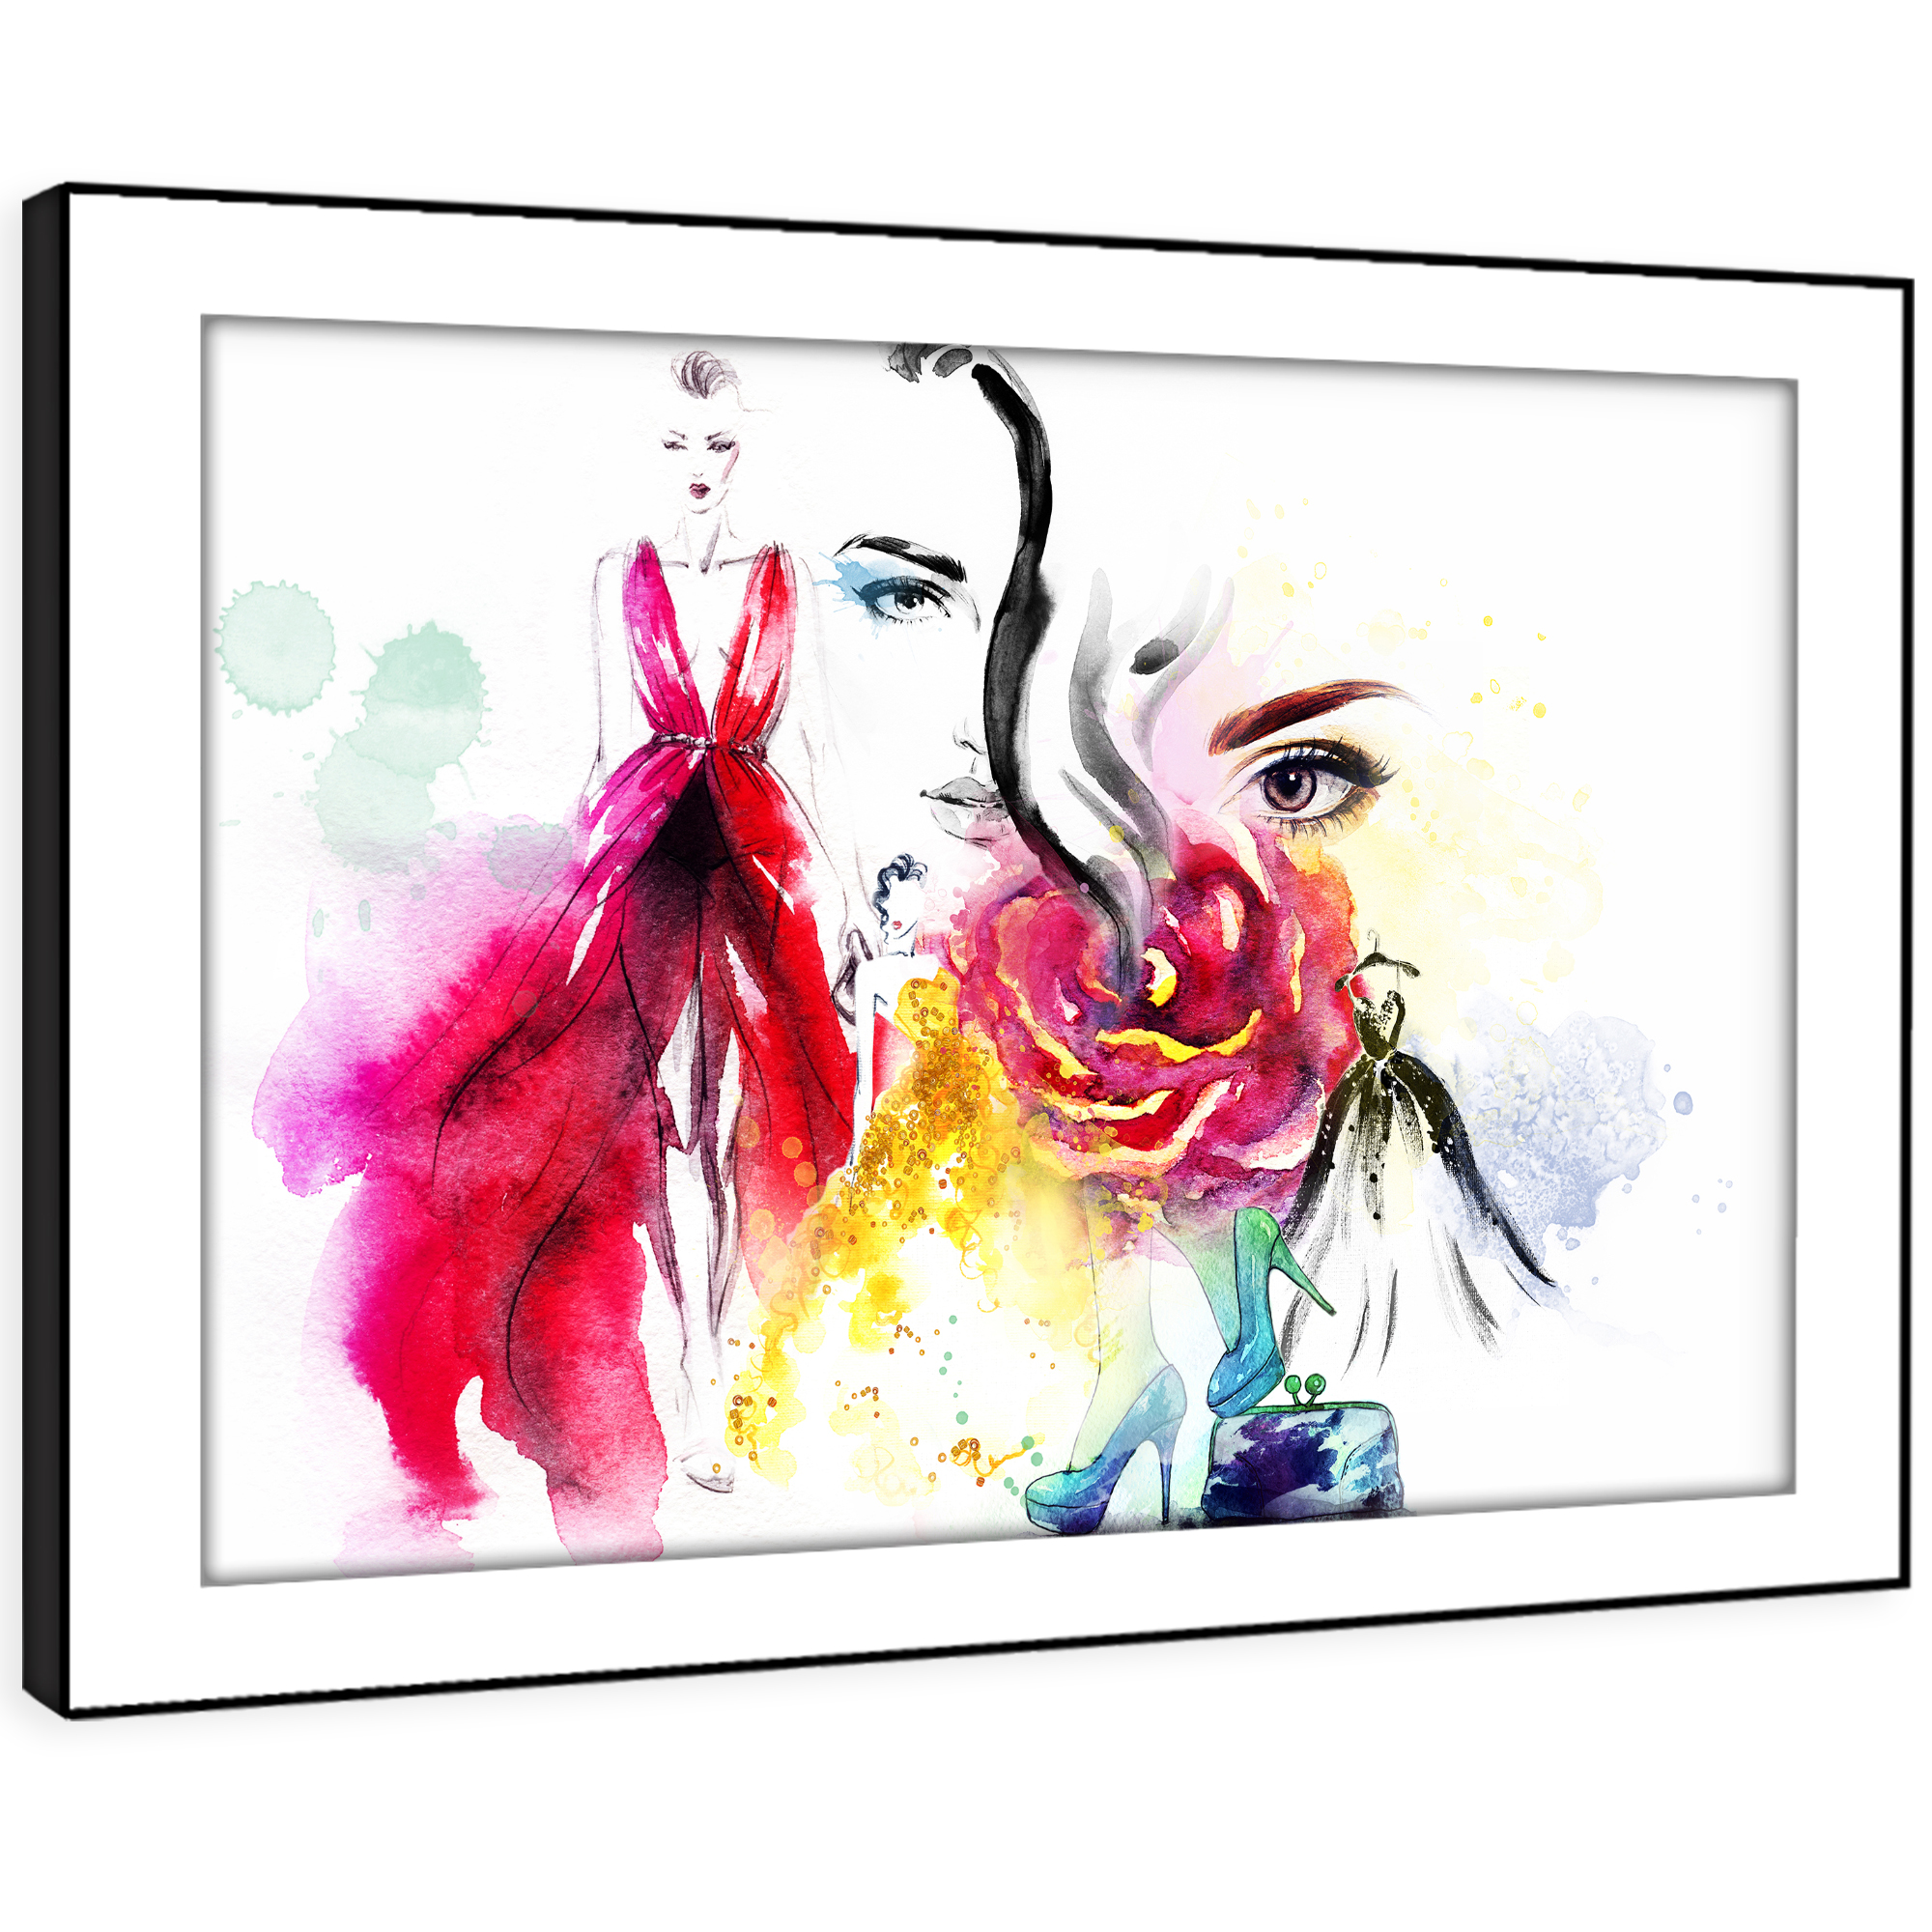 E168 Colourful Floral Woman Face Modern Framed Wall Art Large Picture Prints